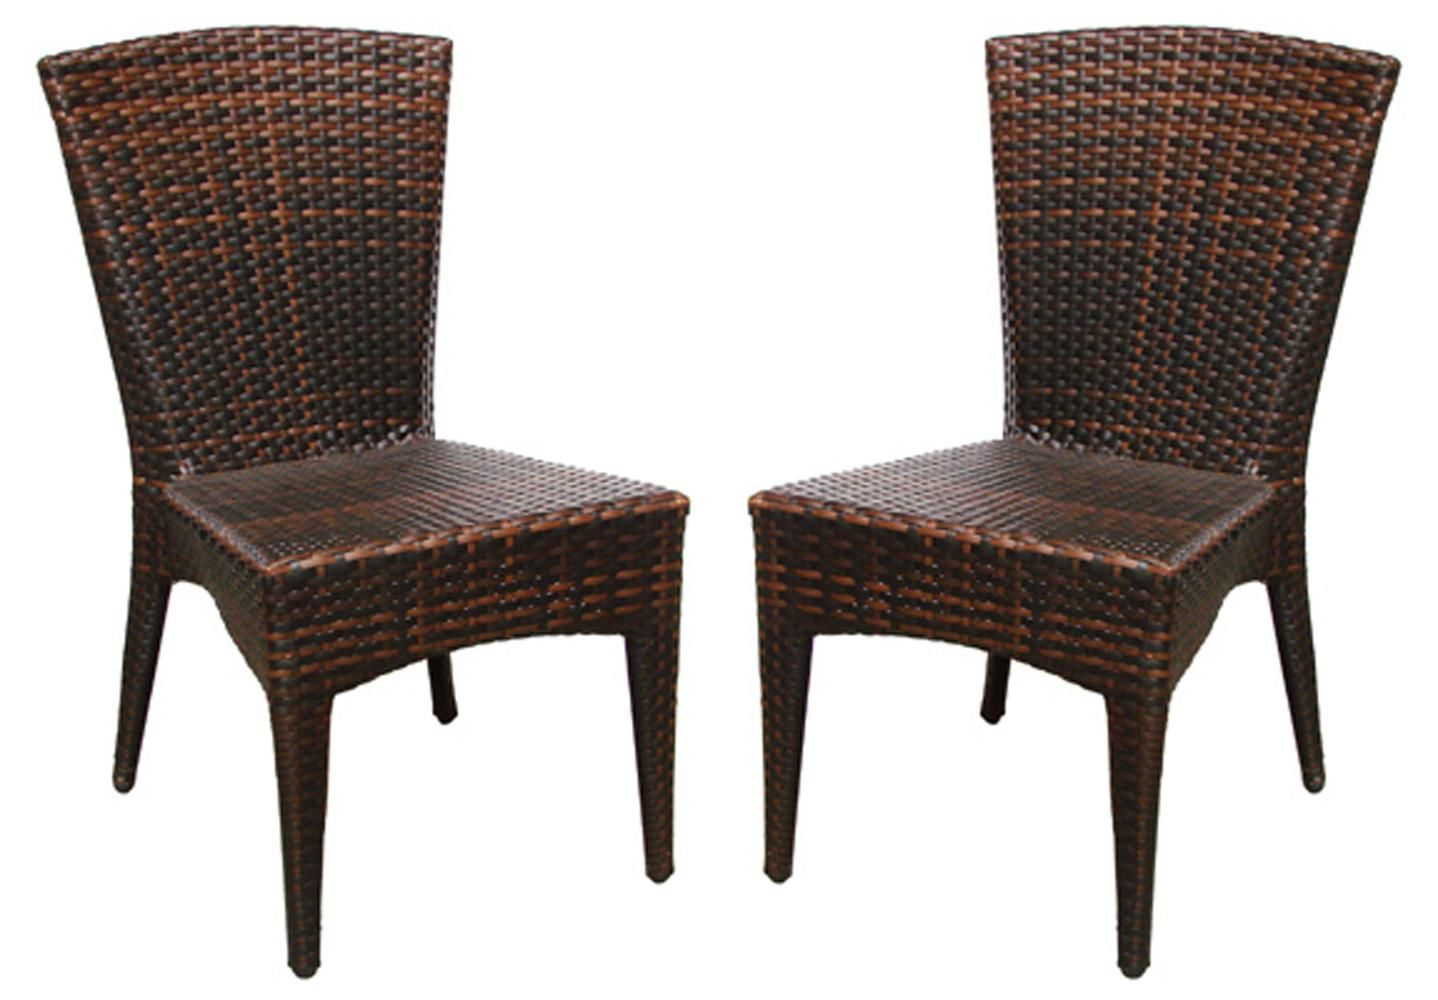 entertain style and accent your patio with these stylish wicker storage table chairs the steel framed are topped weather resistant brown faux made mosaic top coffee over couch